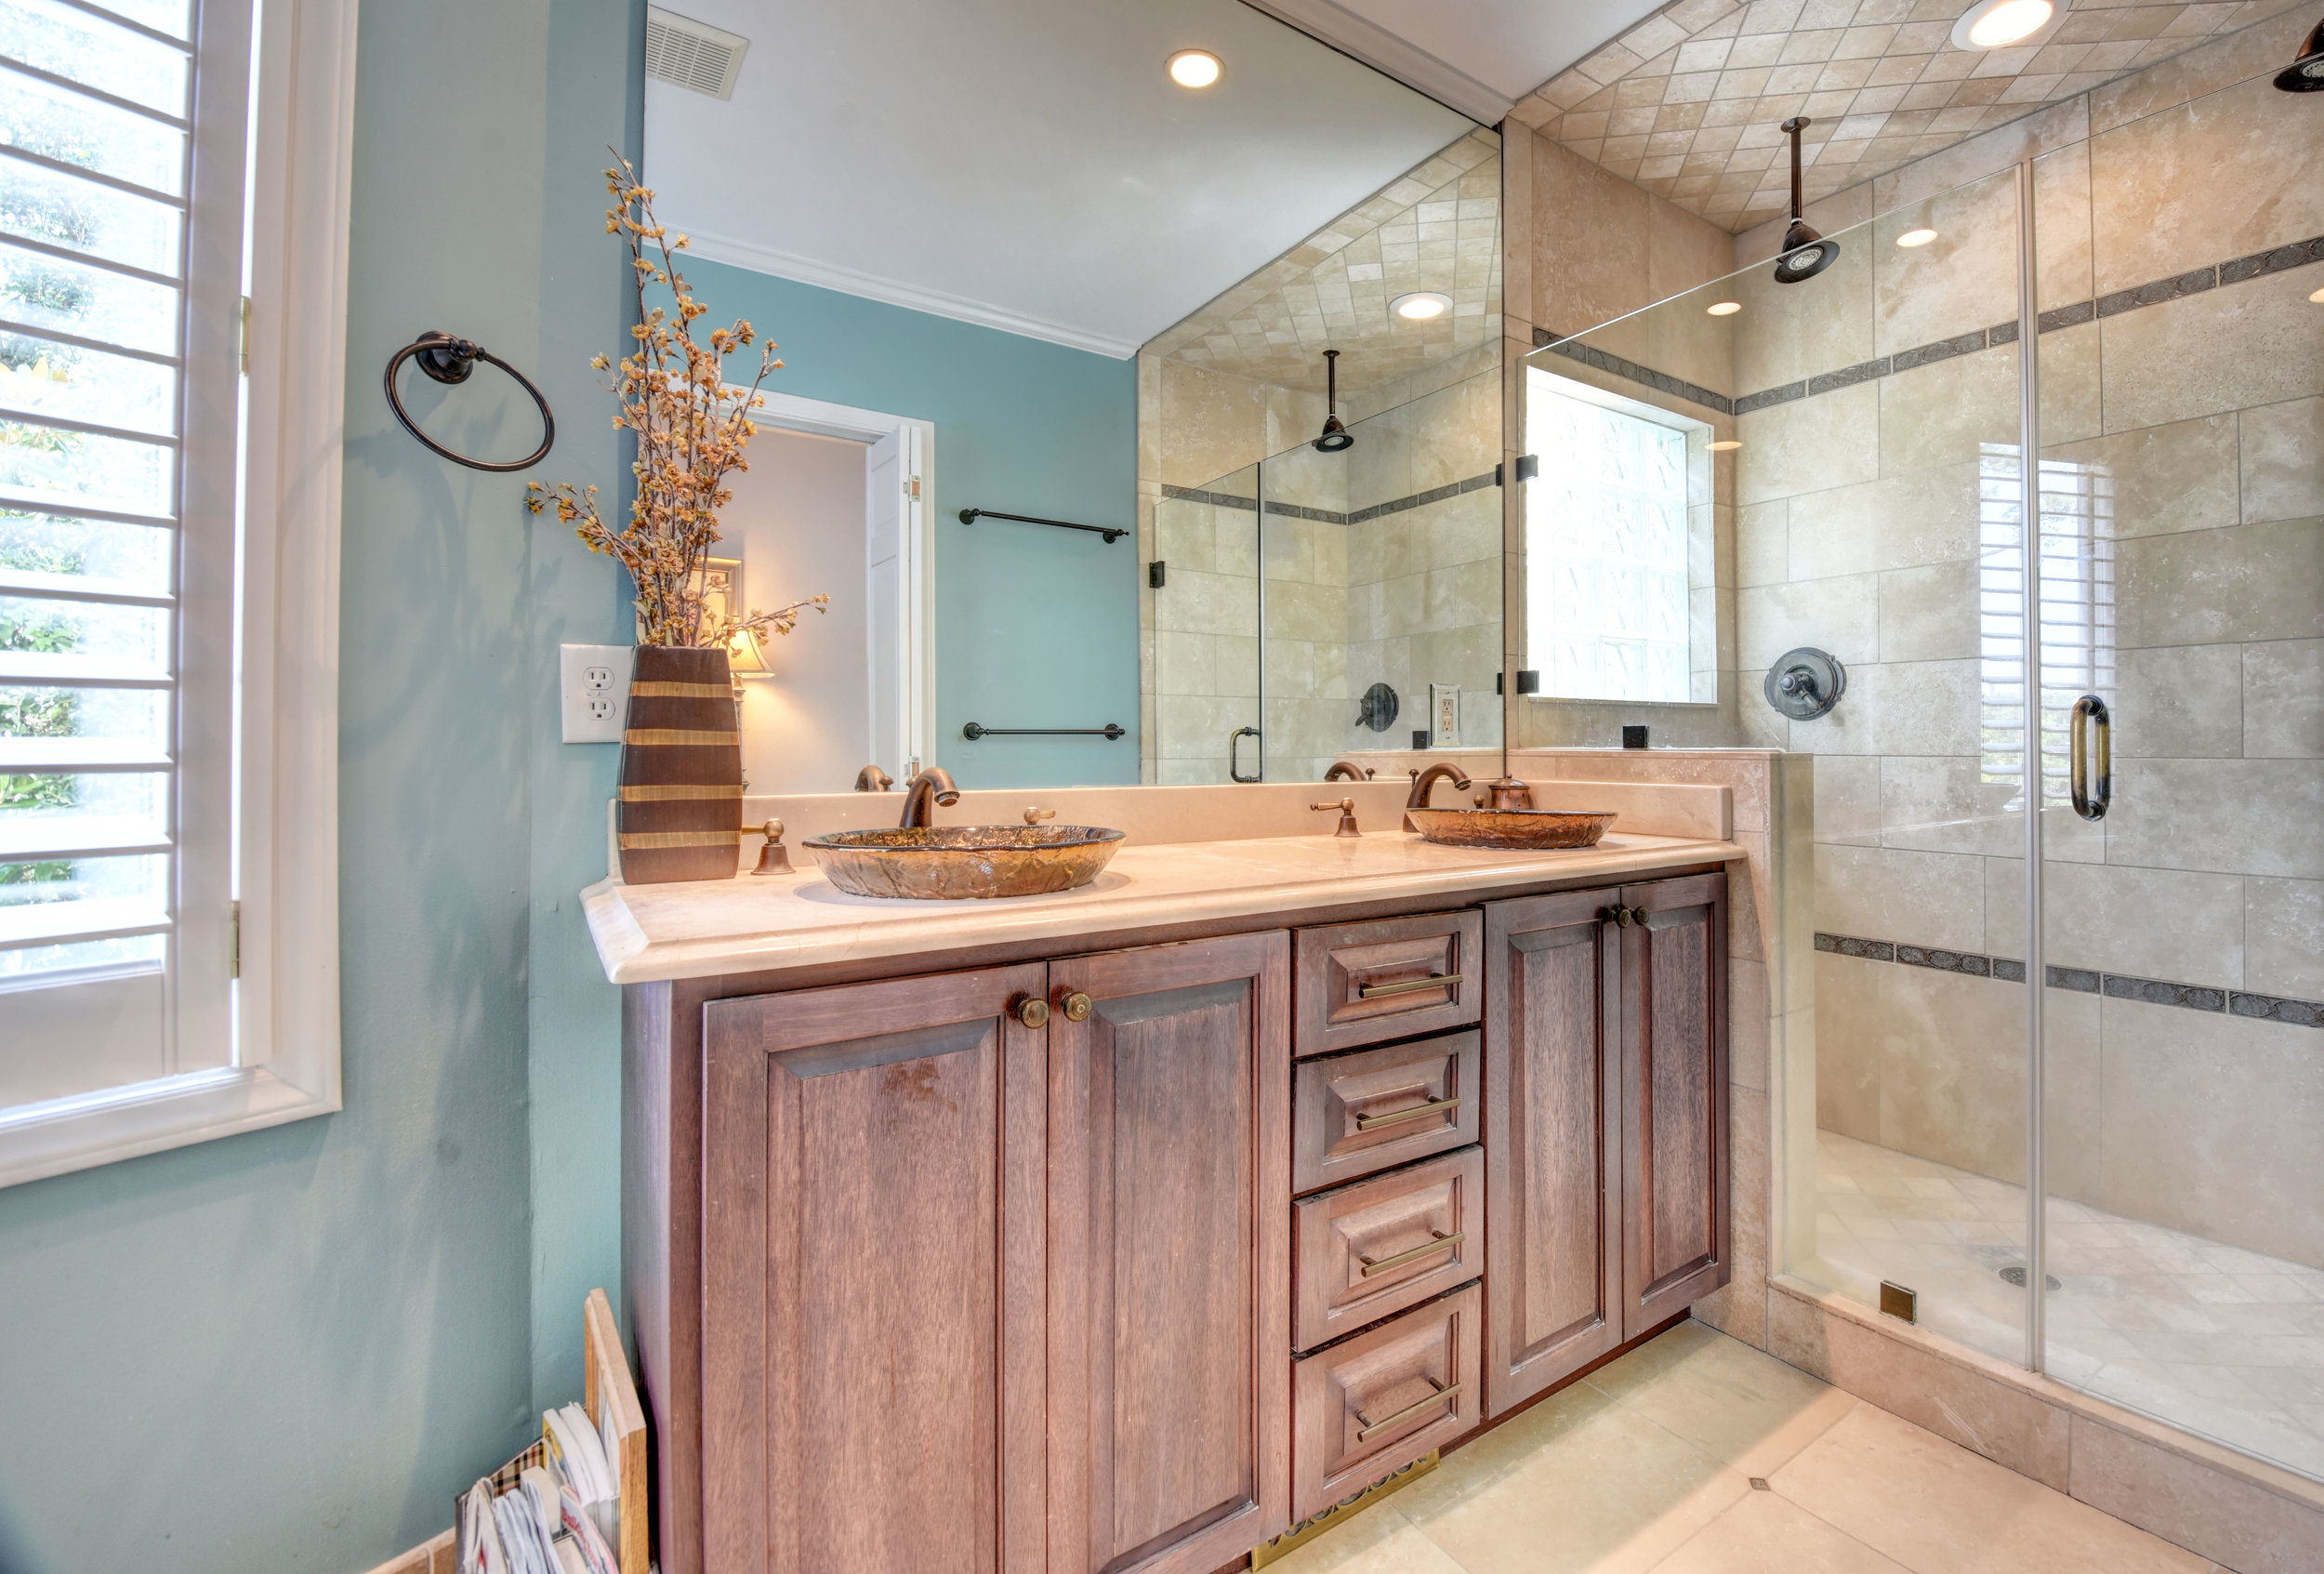 842 Shinn Point Rd Wilmington-print-041-111-Master Bathroom-4200x2844-300dpi.jpg